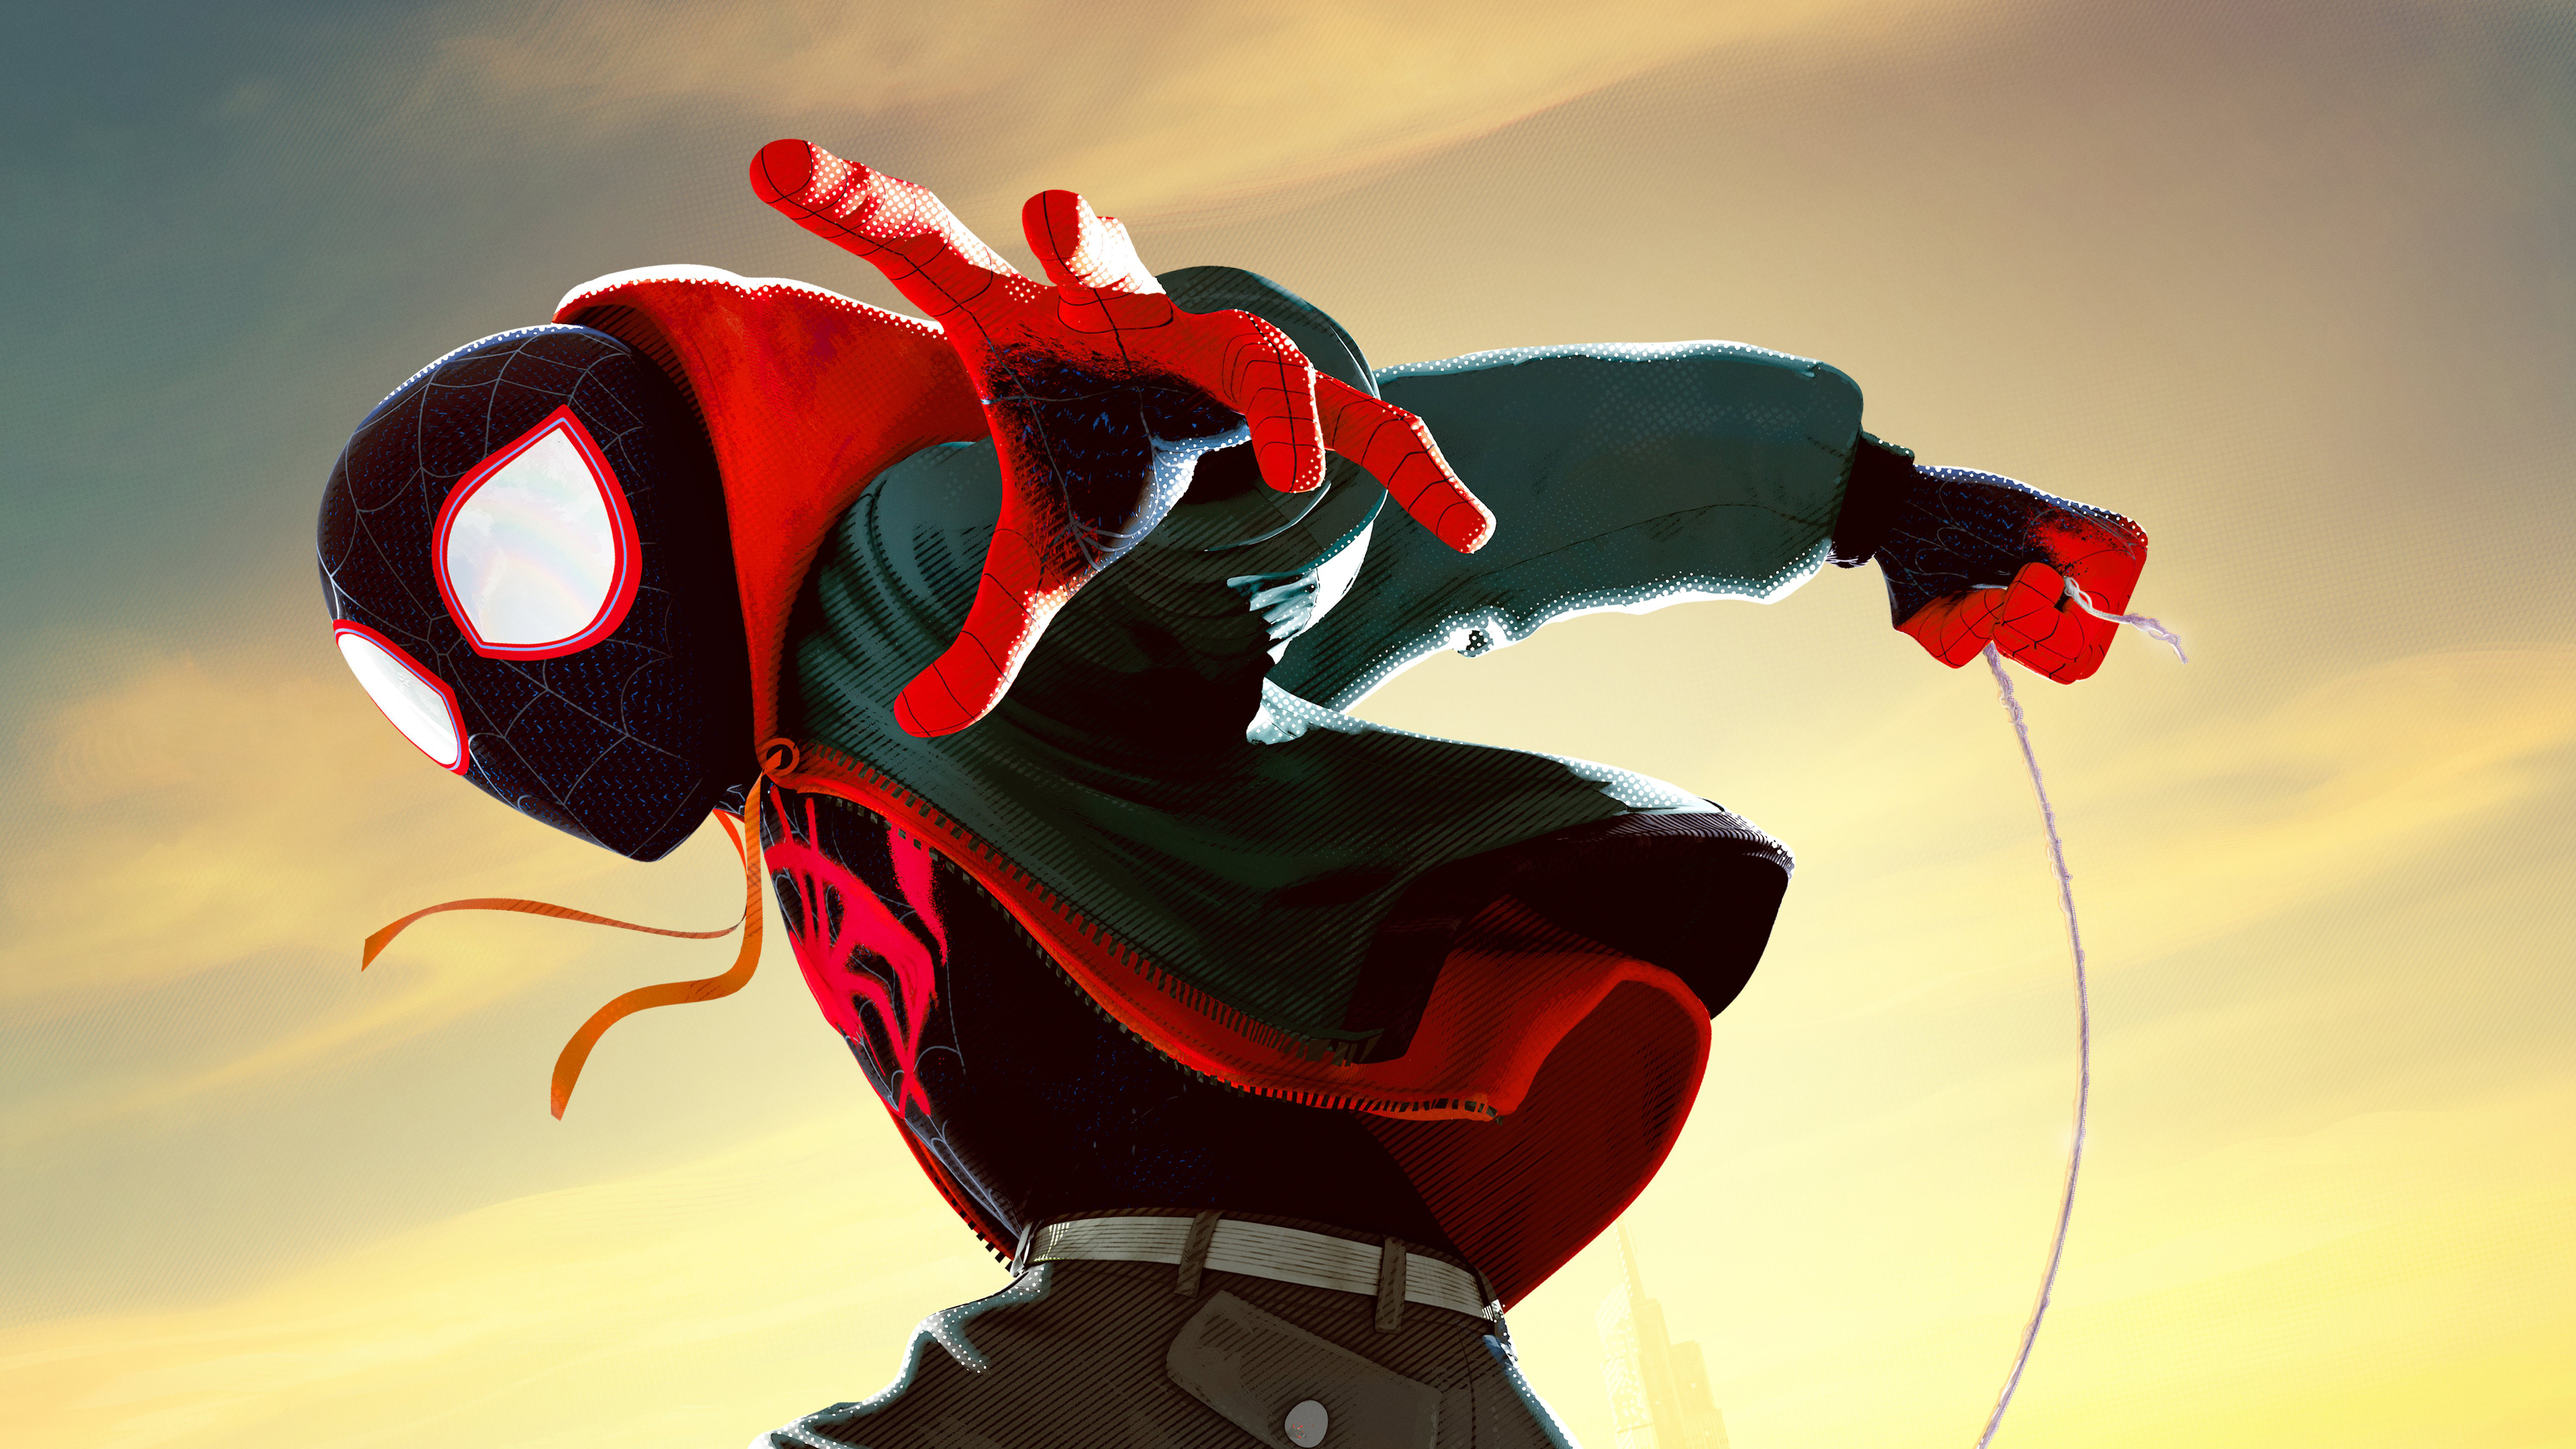 Animated Spider Wallpaper Miles Morales In Spider Man Into The Spider Verse Movie 5k